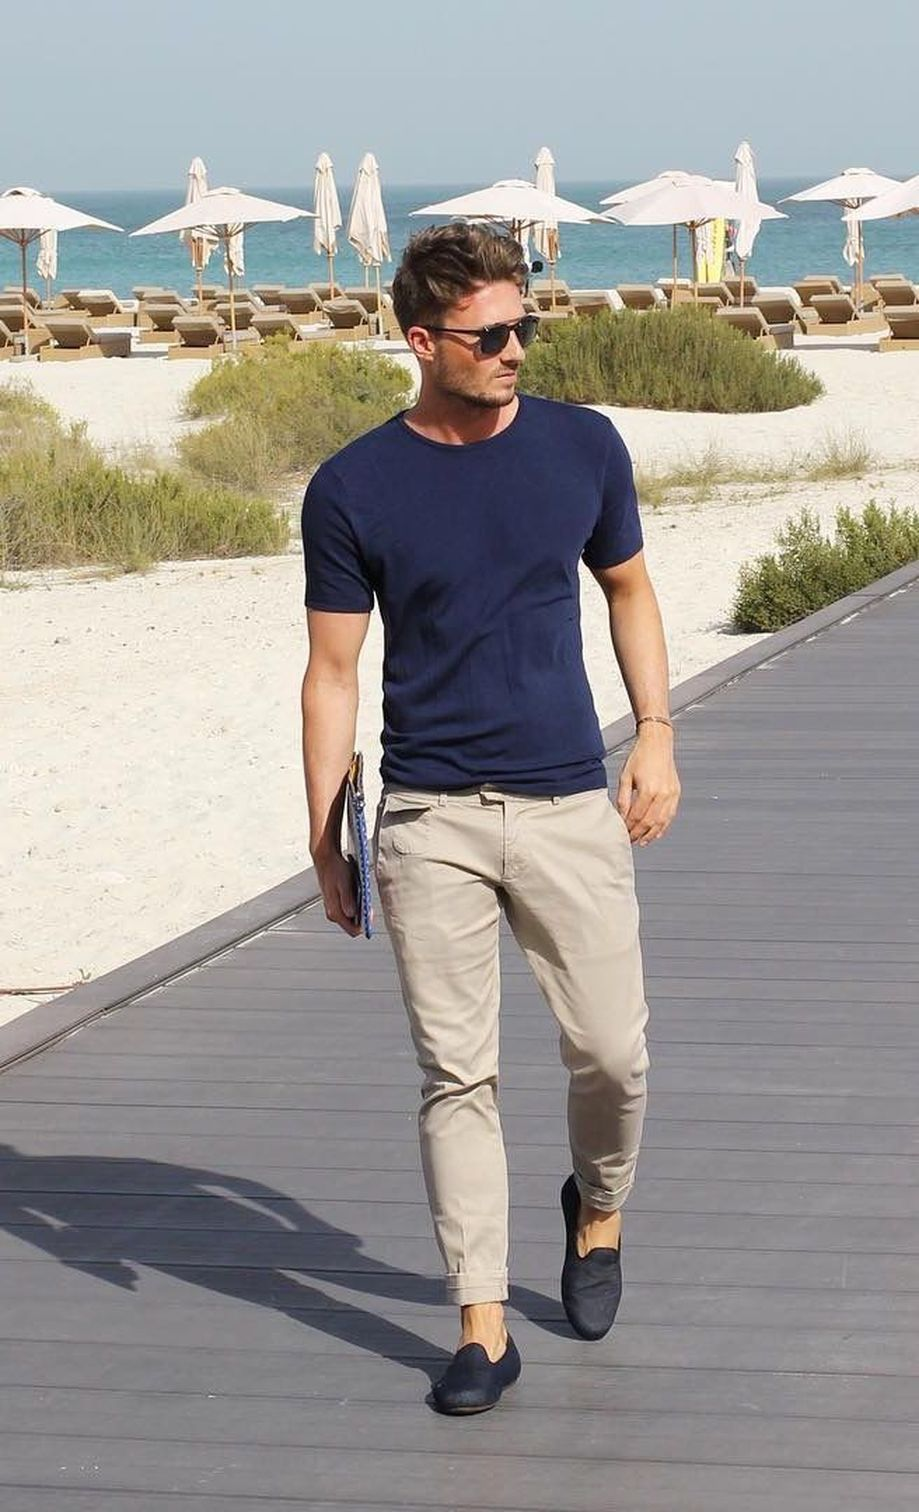 Cool Casual Men's Fashions Summer Outfits Ideas 55